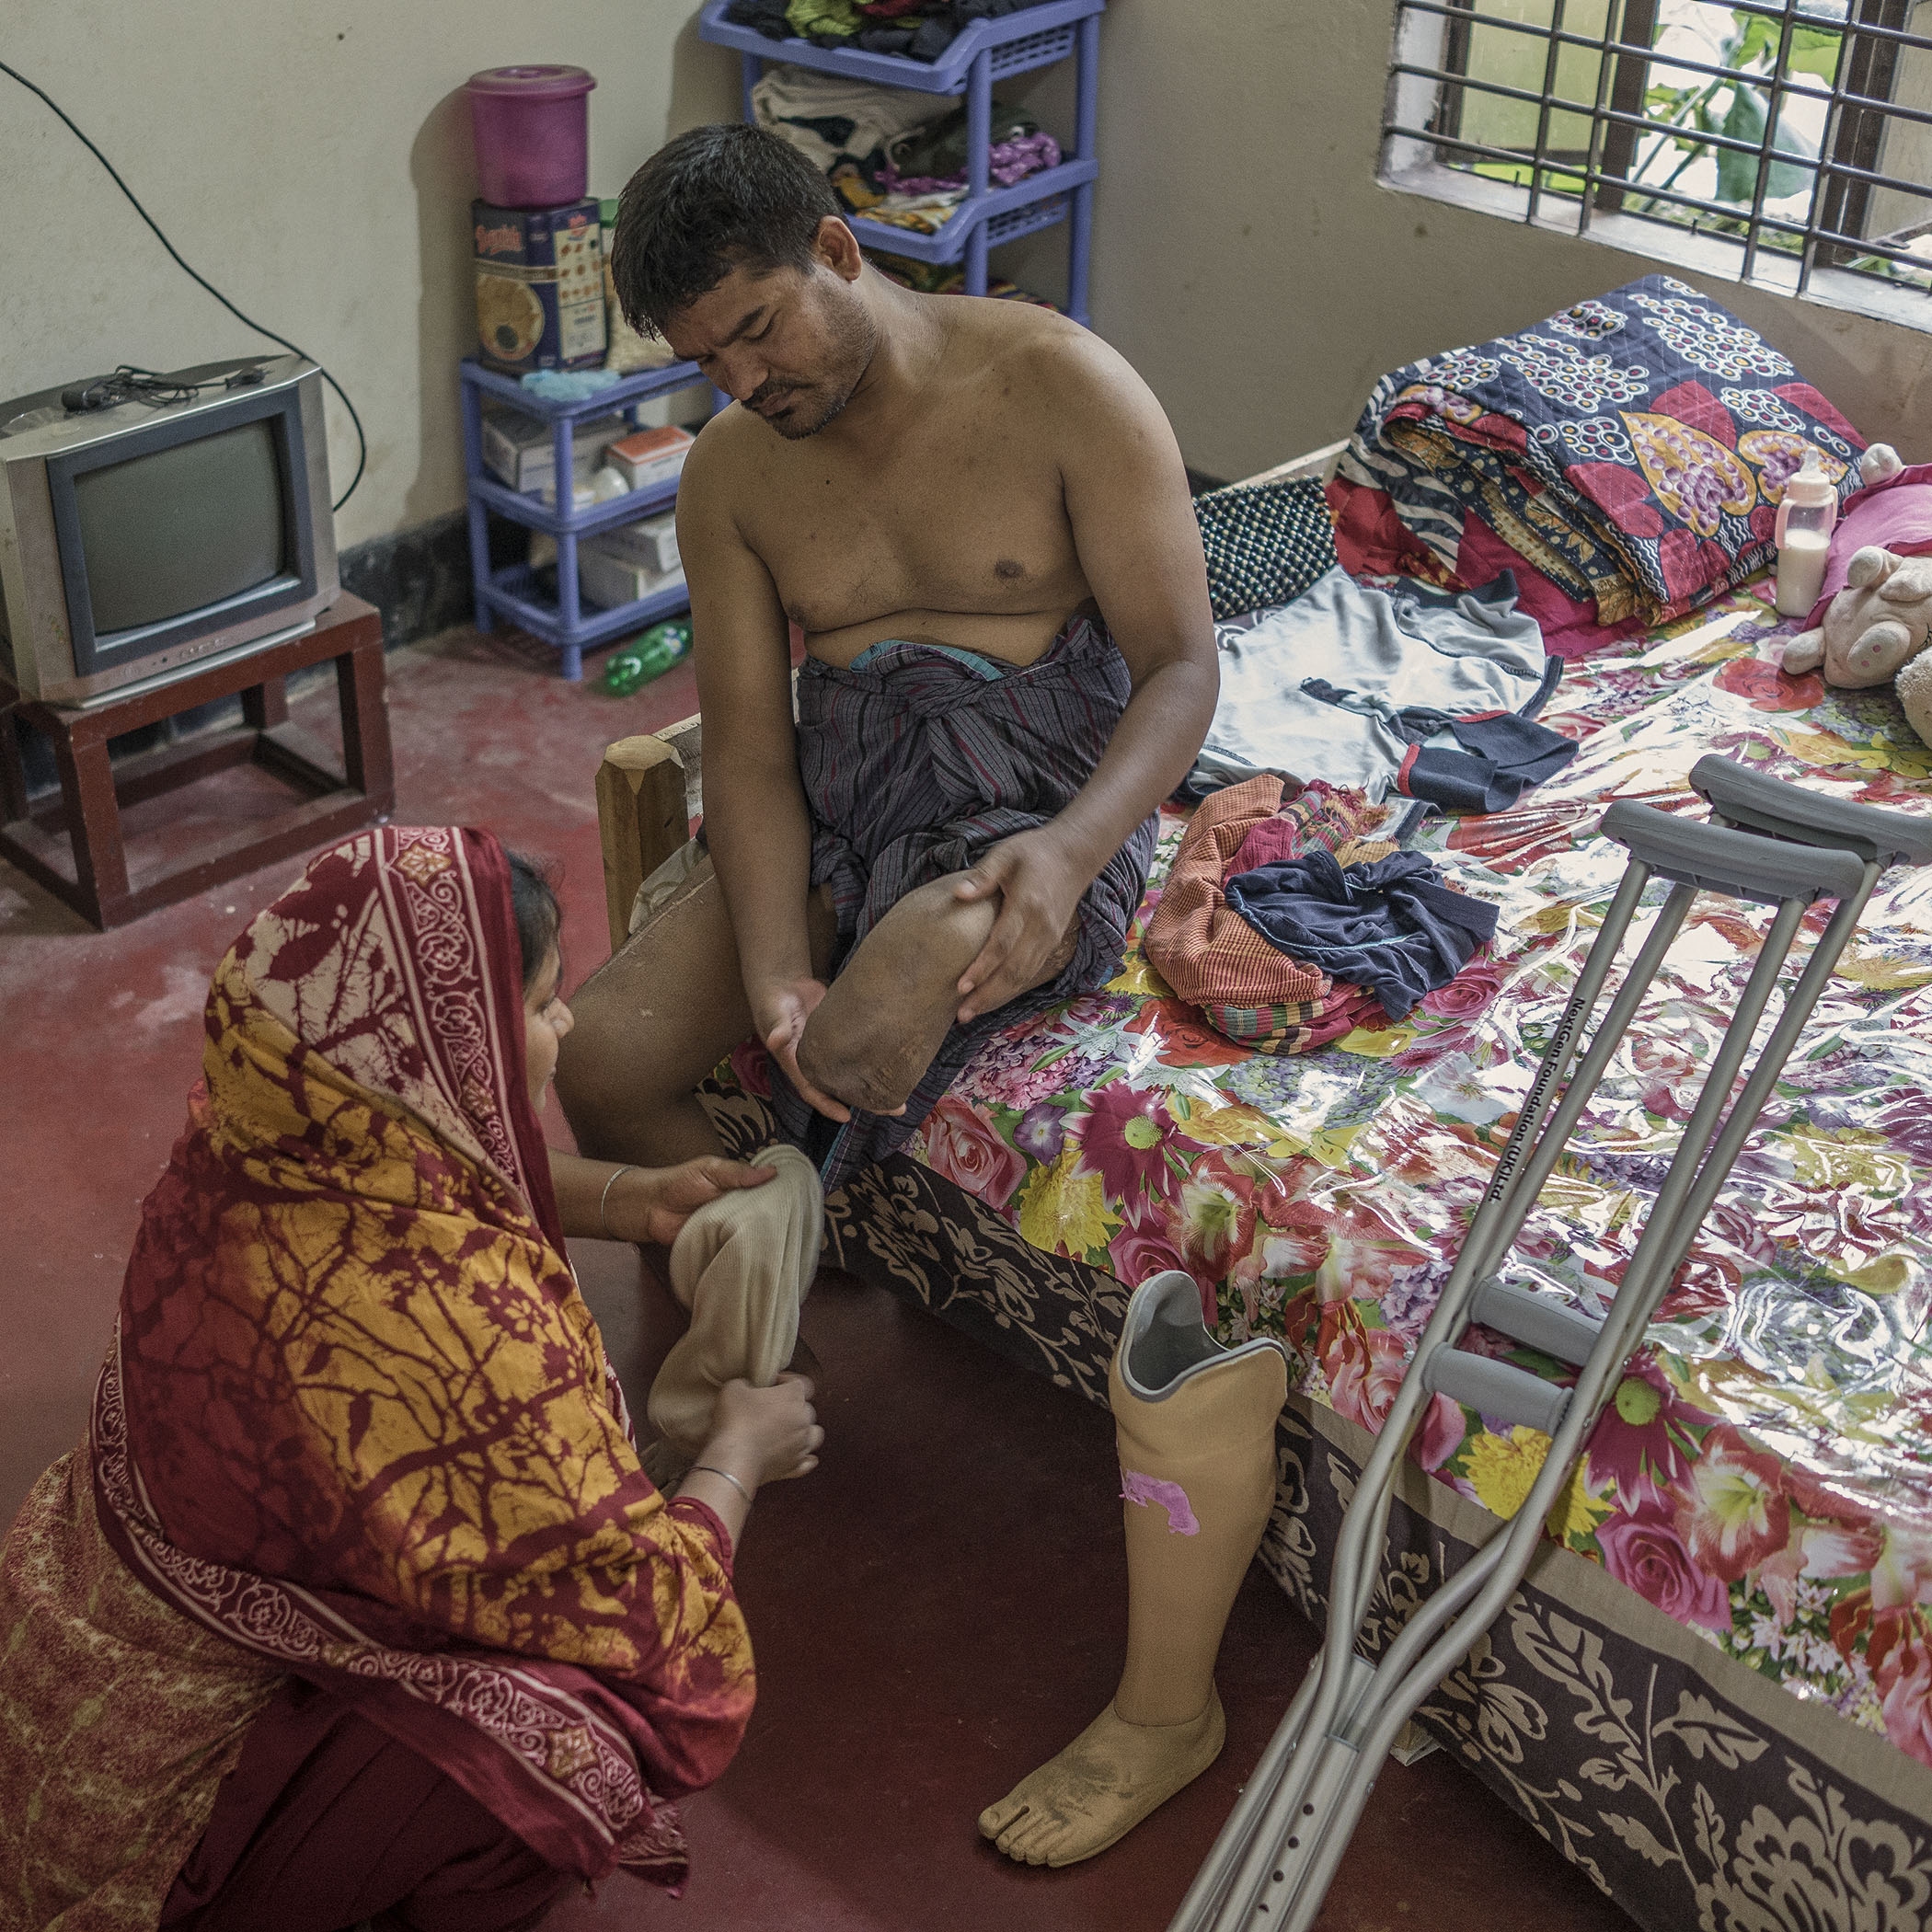 Jewel Sheikh believes without his wife's support and love he would not be come this far after Rana Plaza incident